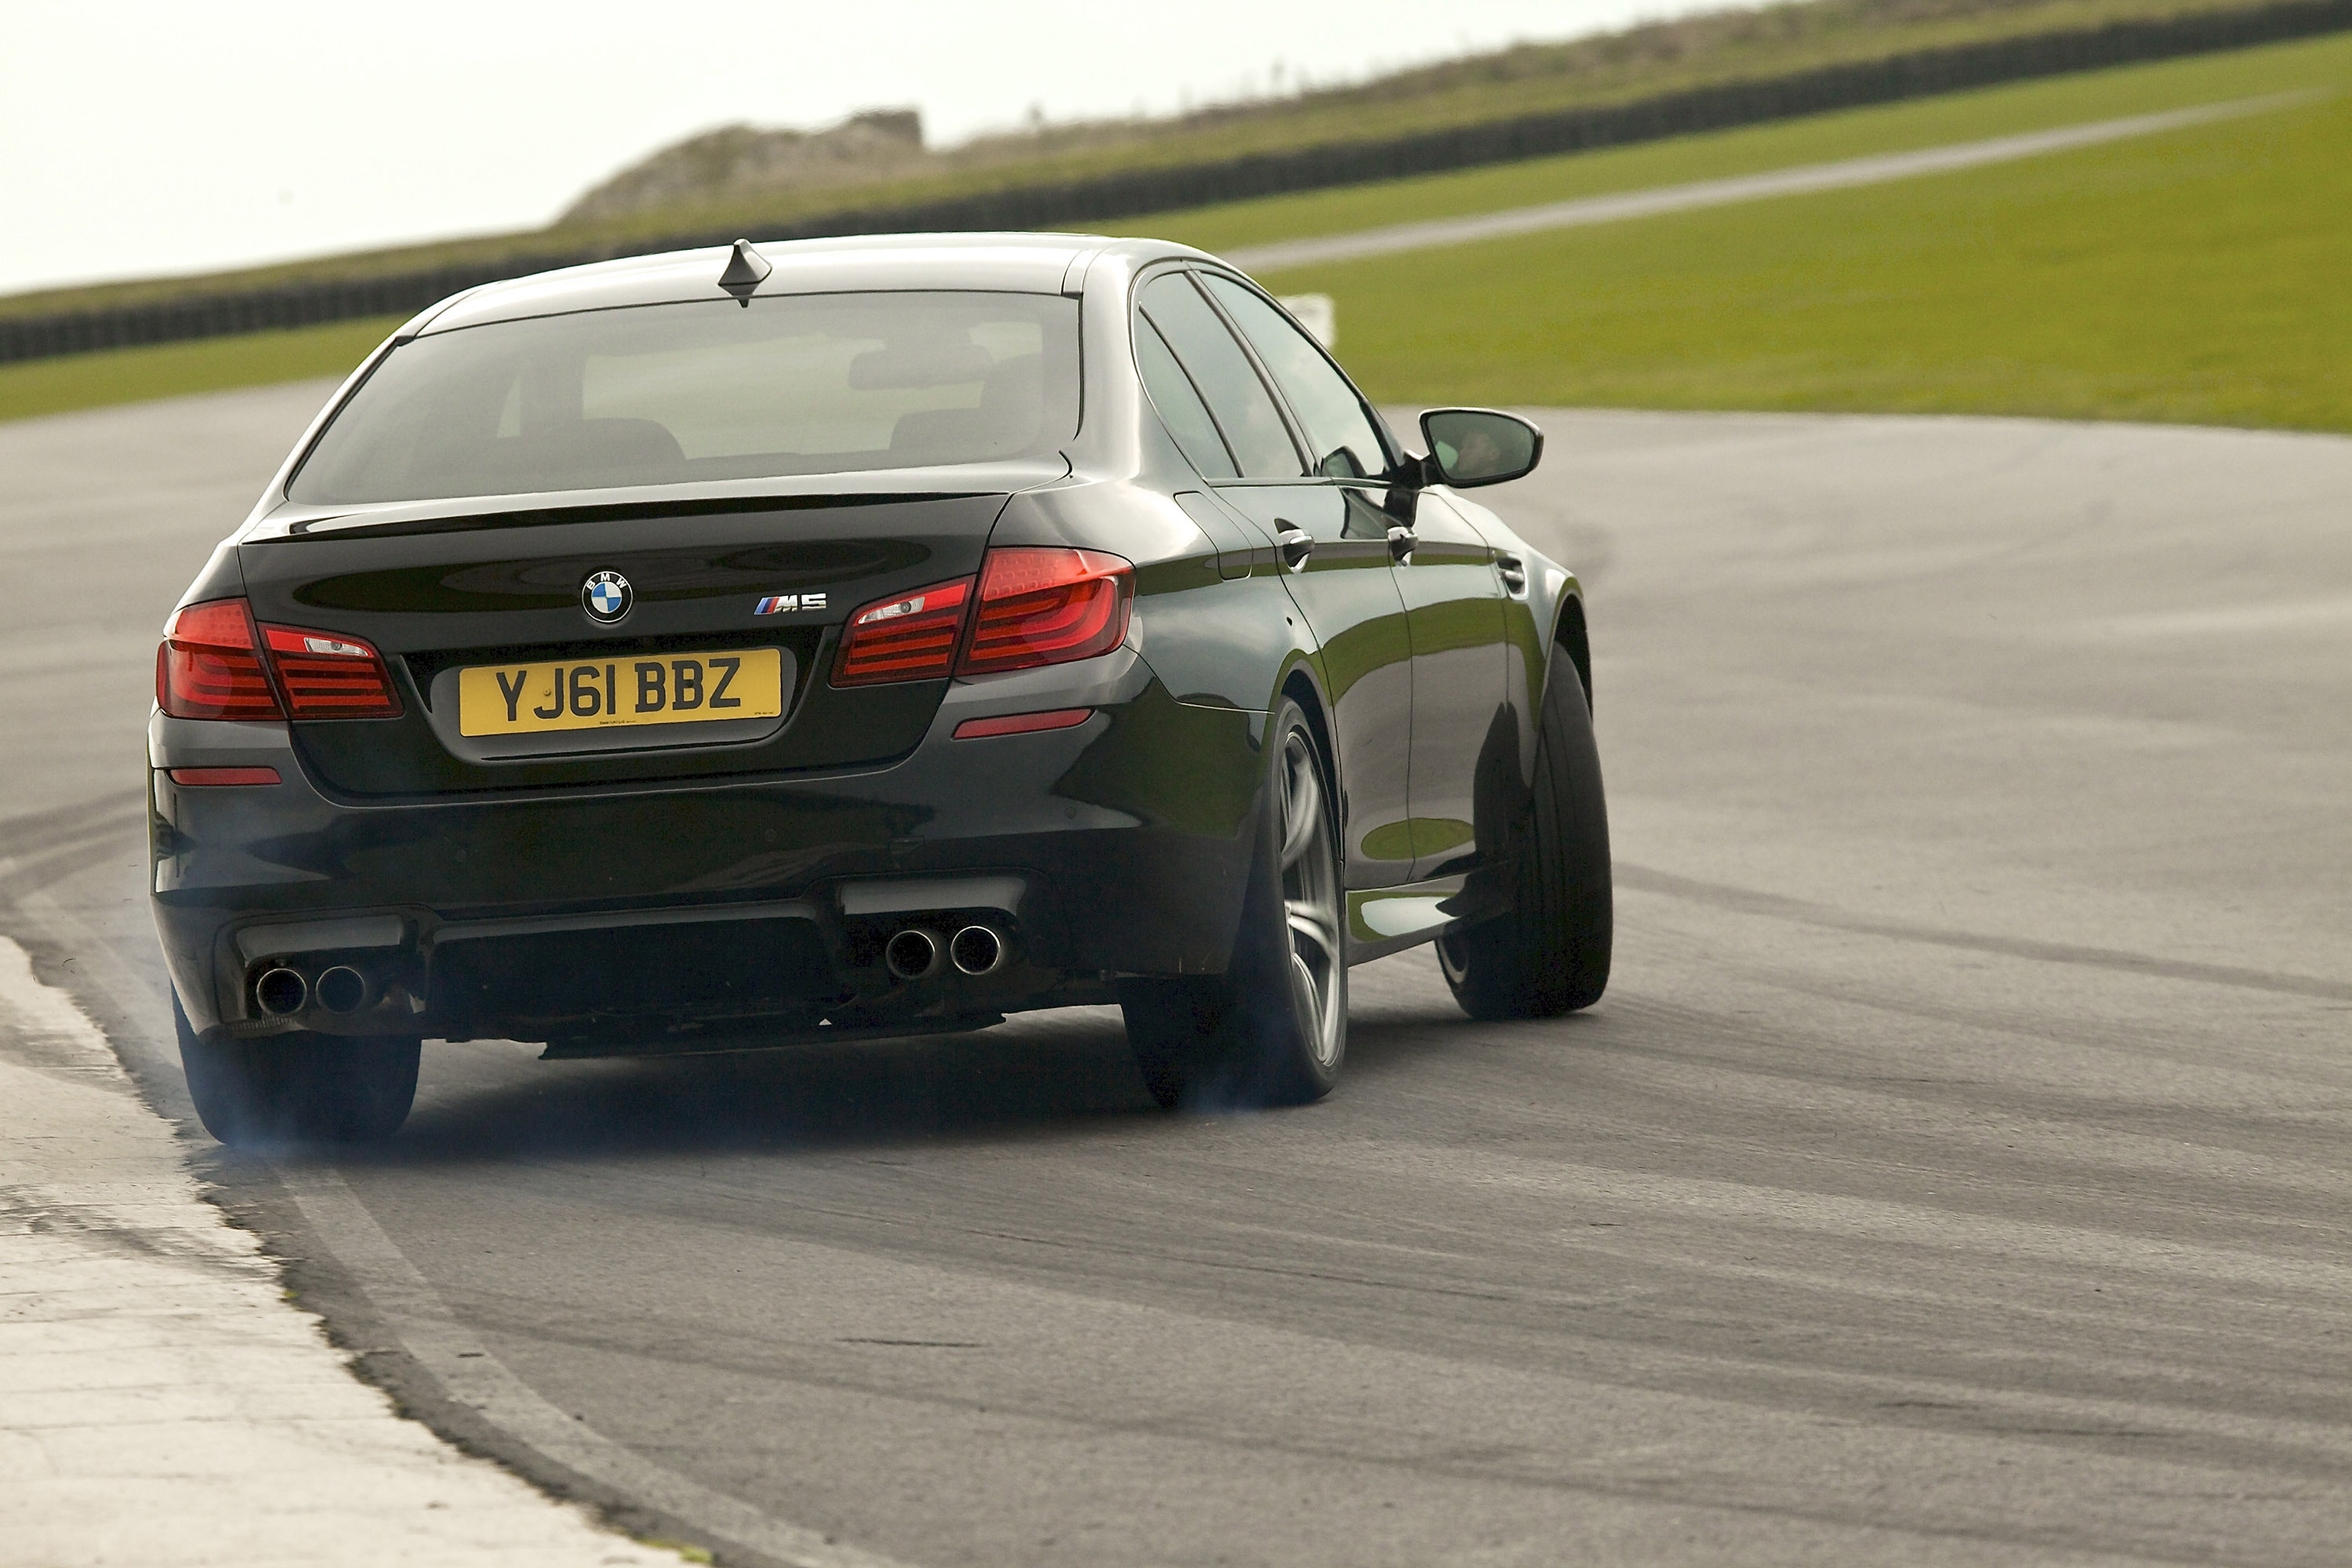 2012 Bmw F10 M5 Saloon Uk Picture 60726